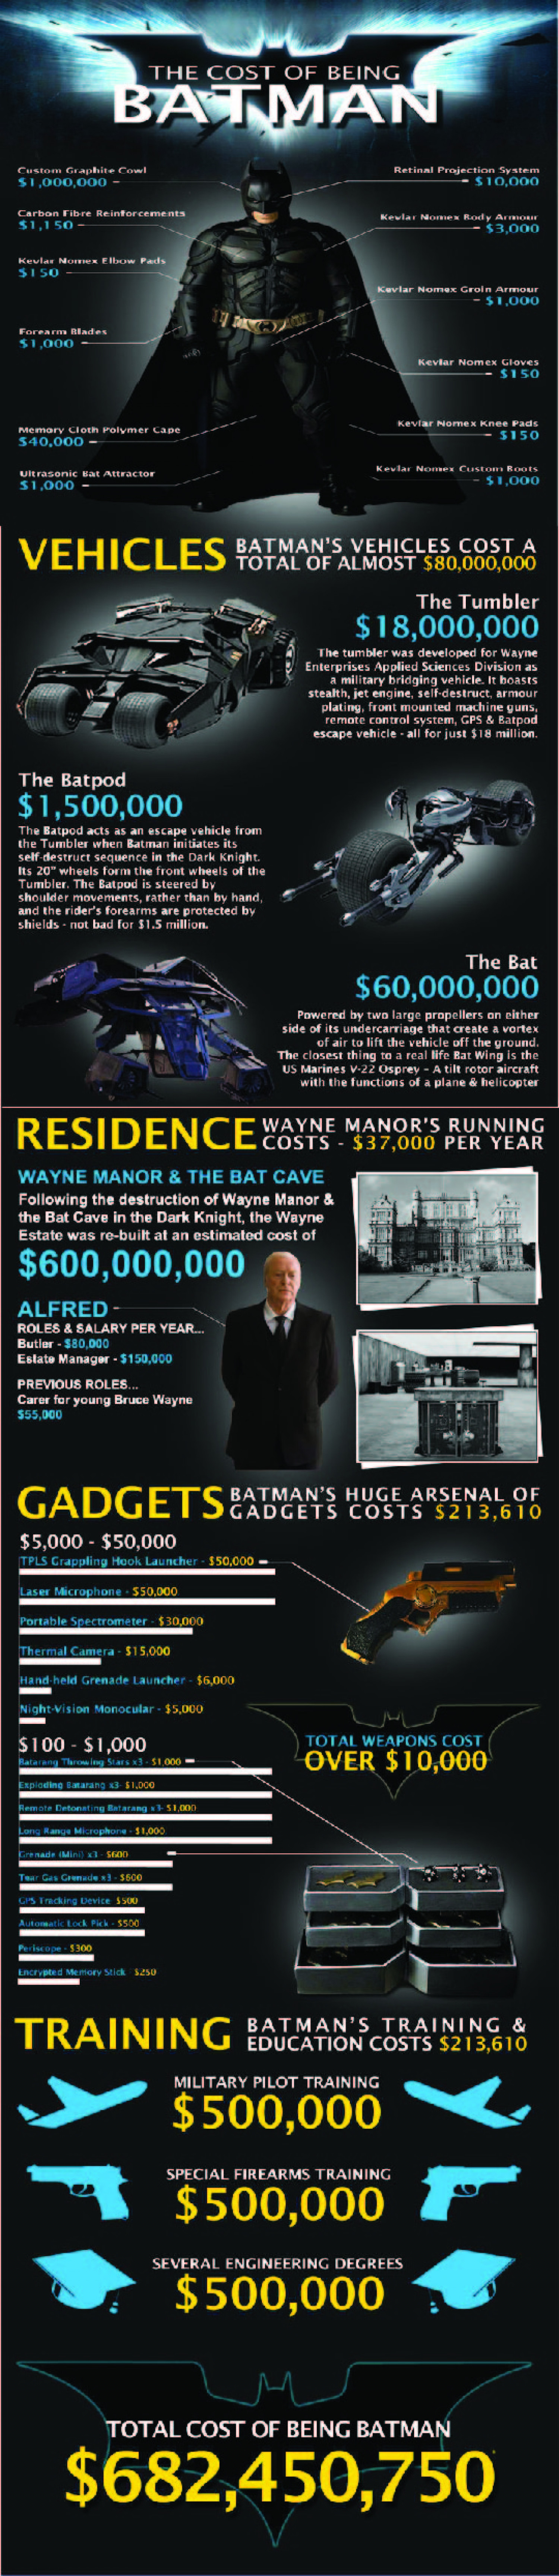 The Cost of Being Batman Infographic